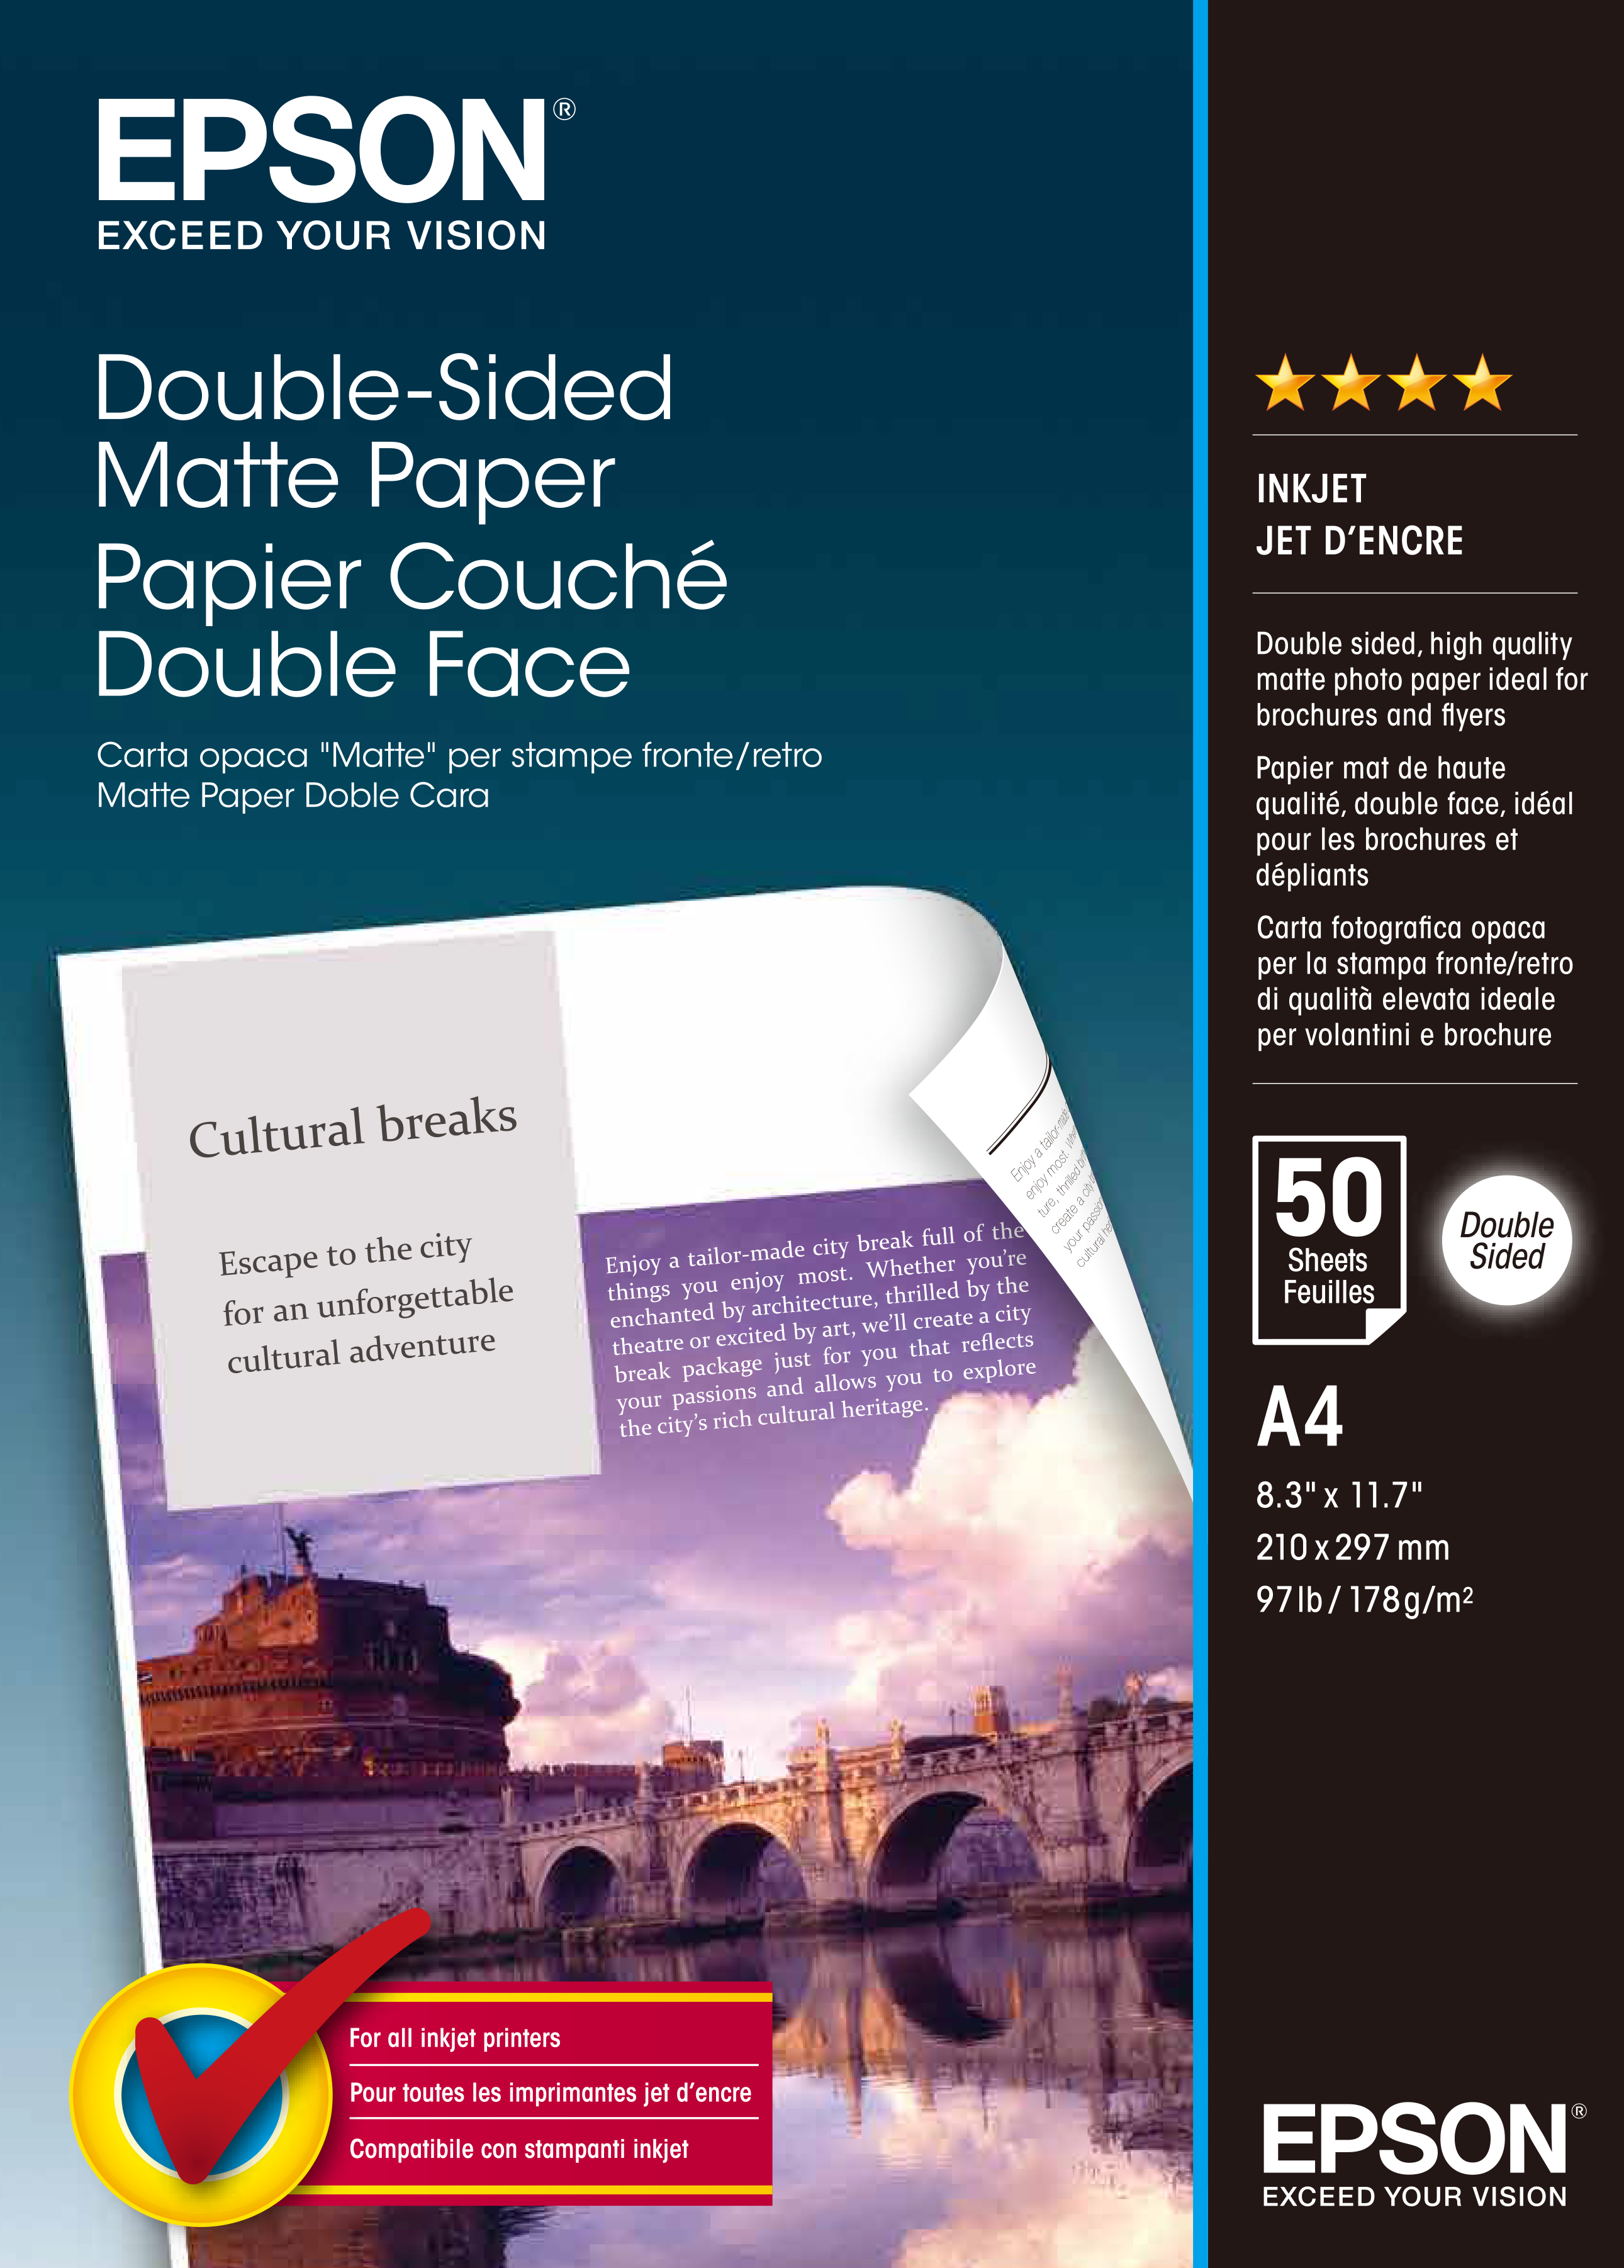 Epson Double-Sided Matte Paper - Two-sided Matte Paper - A4 (210 X 297 Mm) - 178 G/m2 - 50 Sheet(s) C13S041569 - C2000